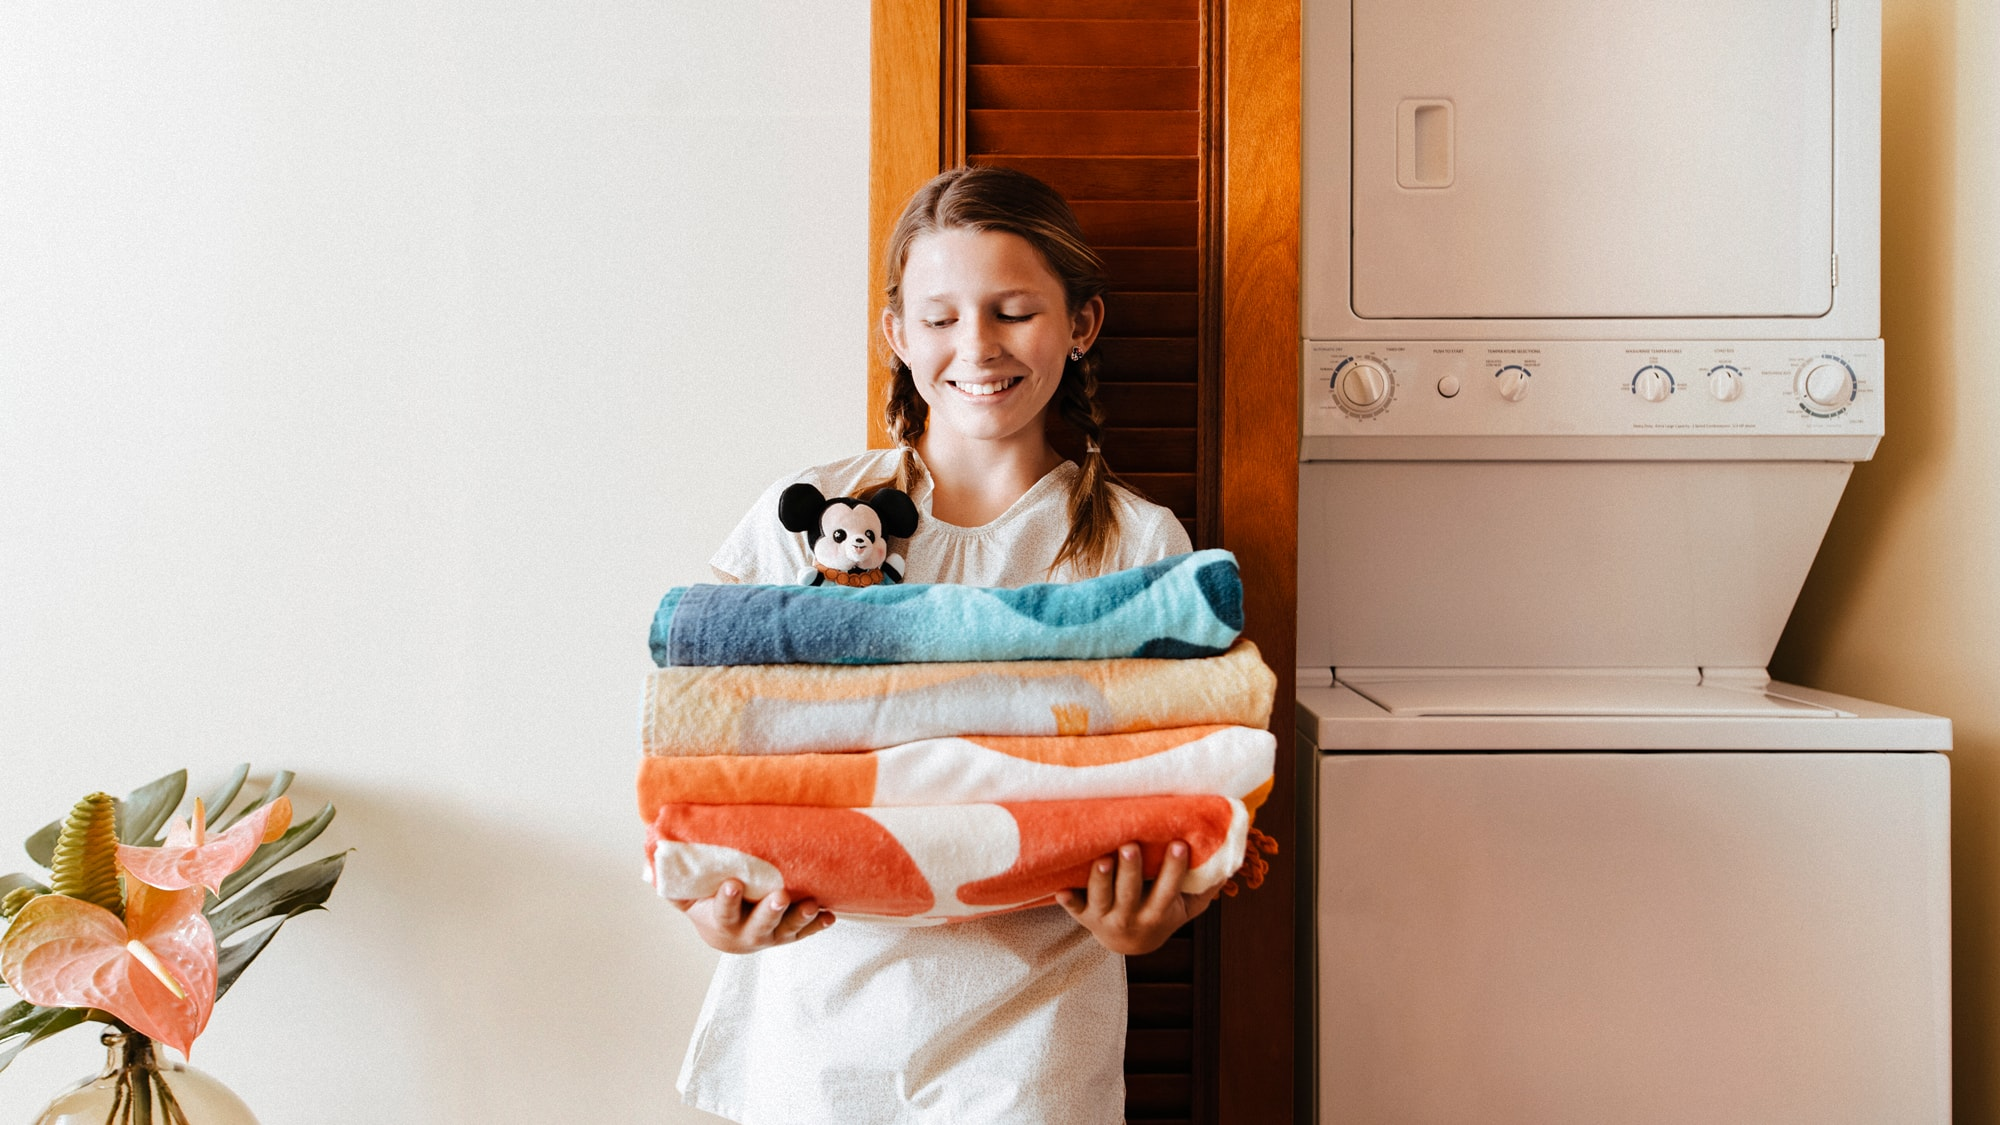 A young girl holding a stack of towels in the laundry area of a Villa